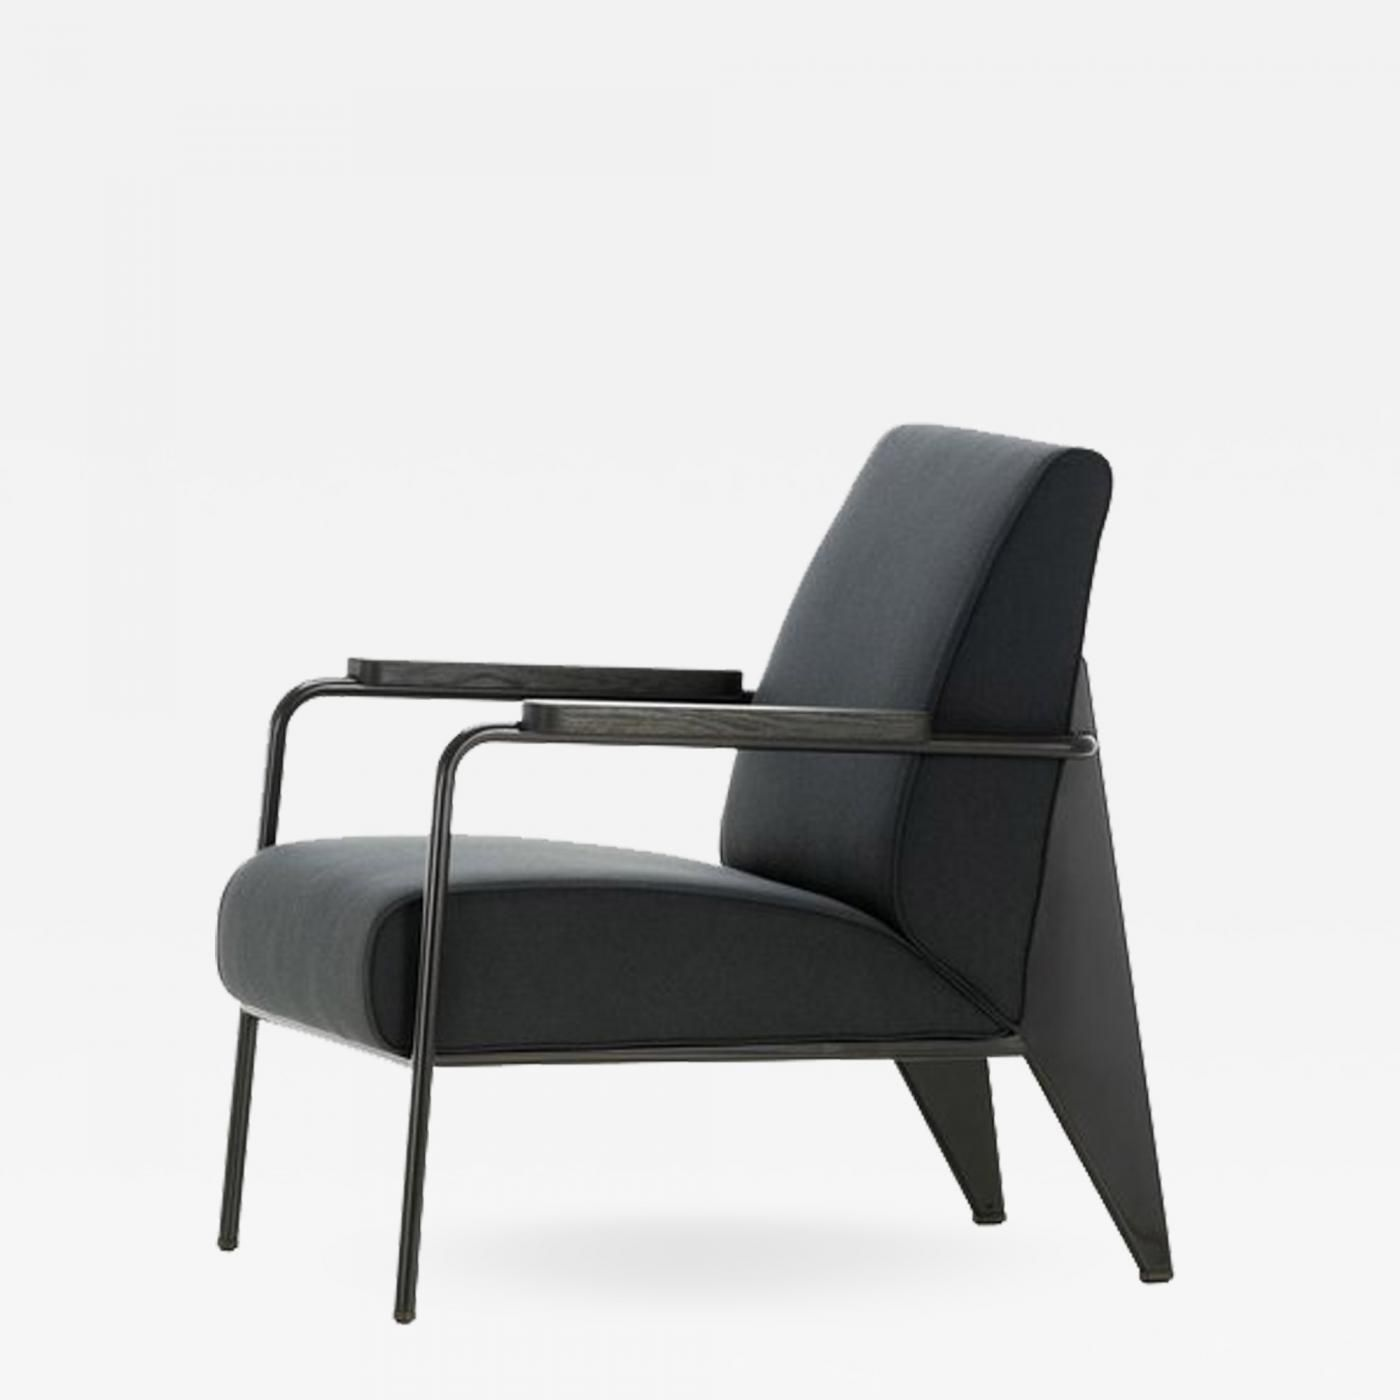 Jean Prouve Re Editions Vitra Fauteuil De Salon Armchair In Black By Jean Prouve In 2020 Furniture Armchair Vitra